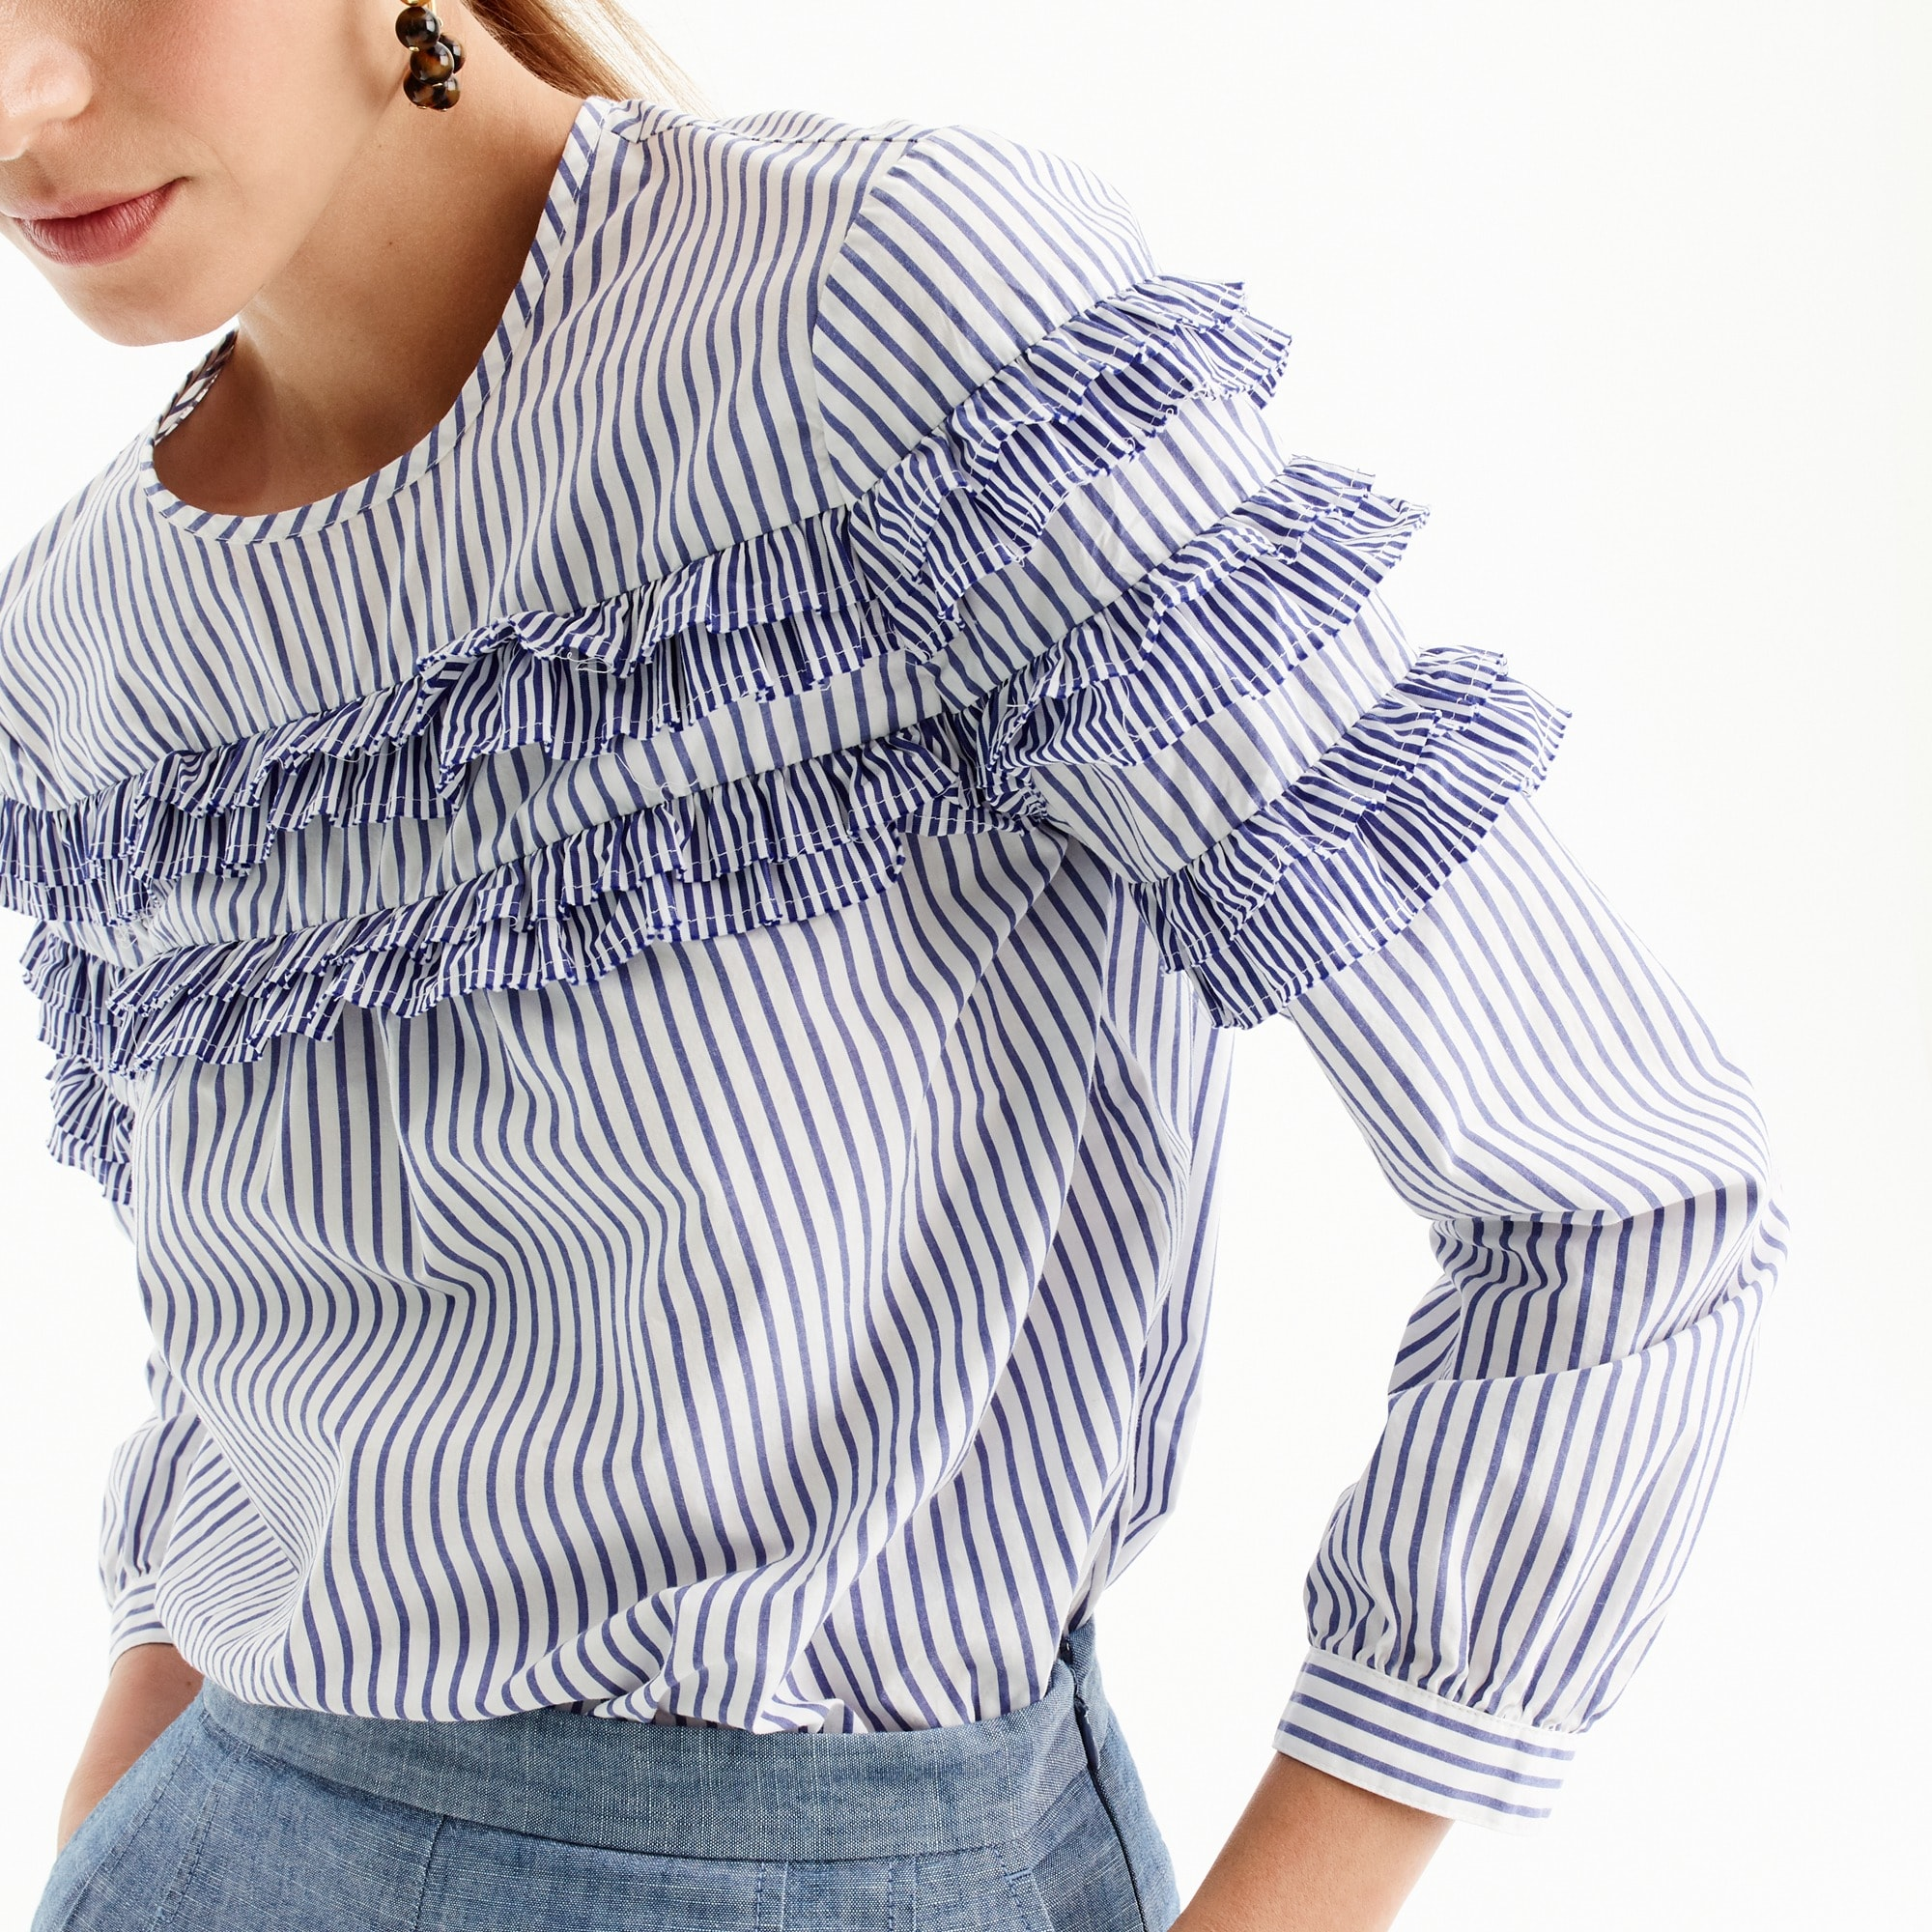 Tiered top in mixed stripes